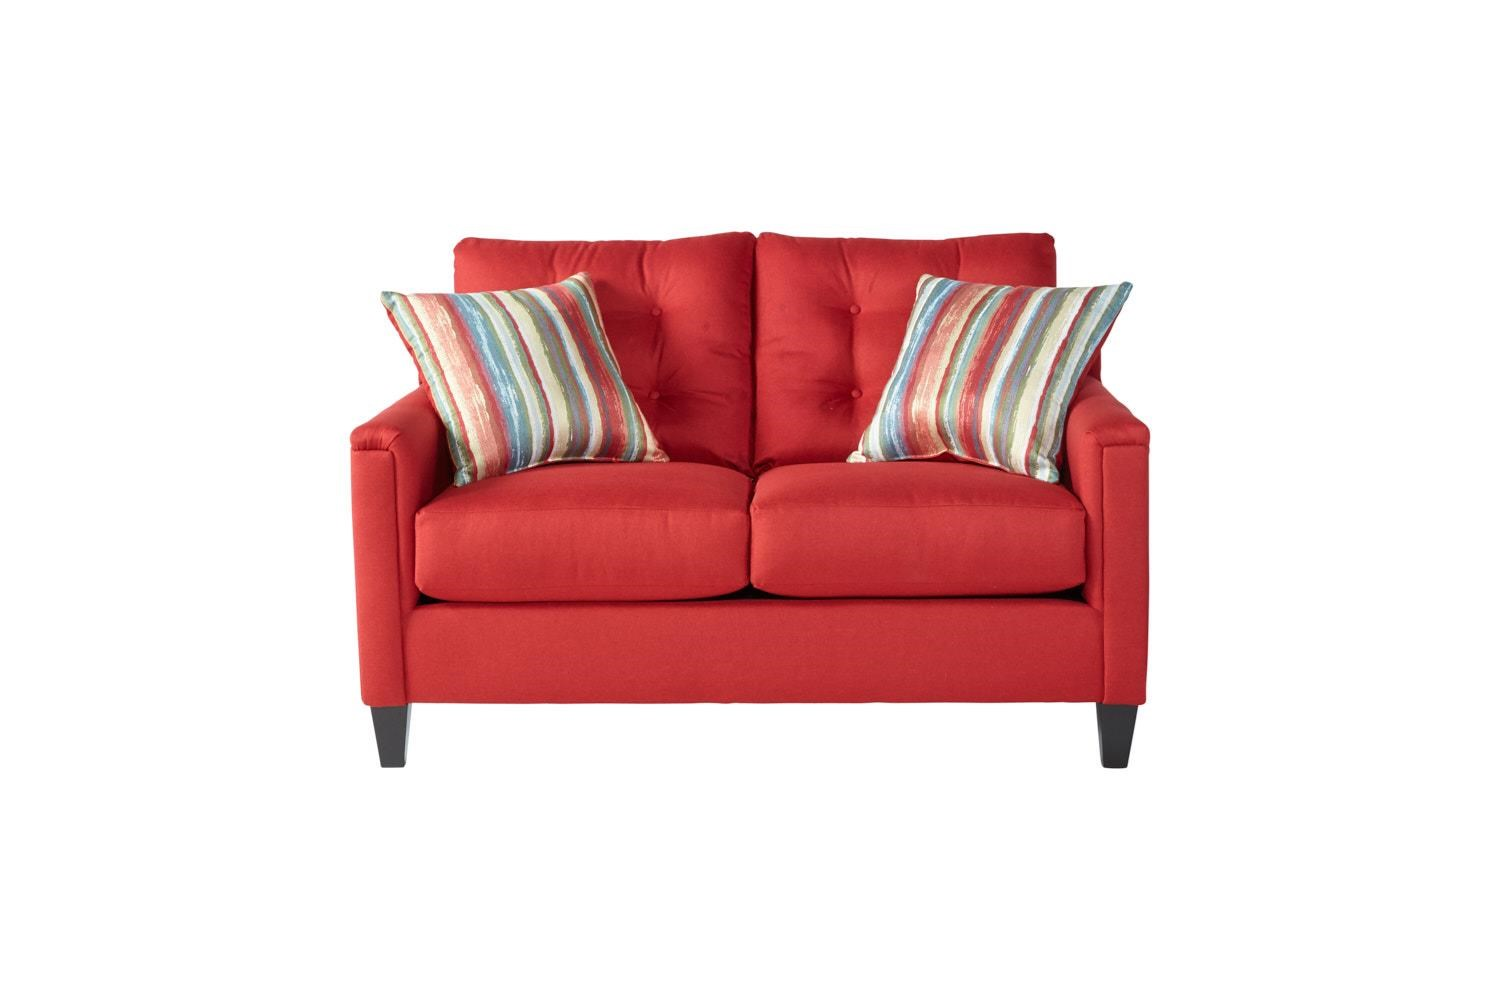 Serta Upholstery by Hughes Furniture 6800Jitt Red Loveseat - Item Number: 6800Red